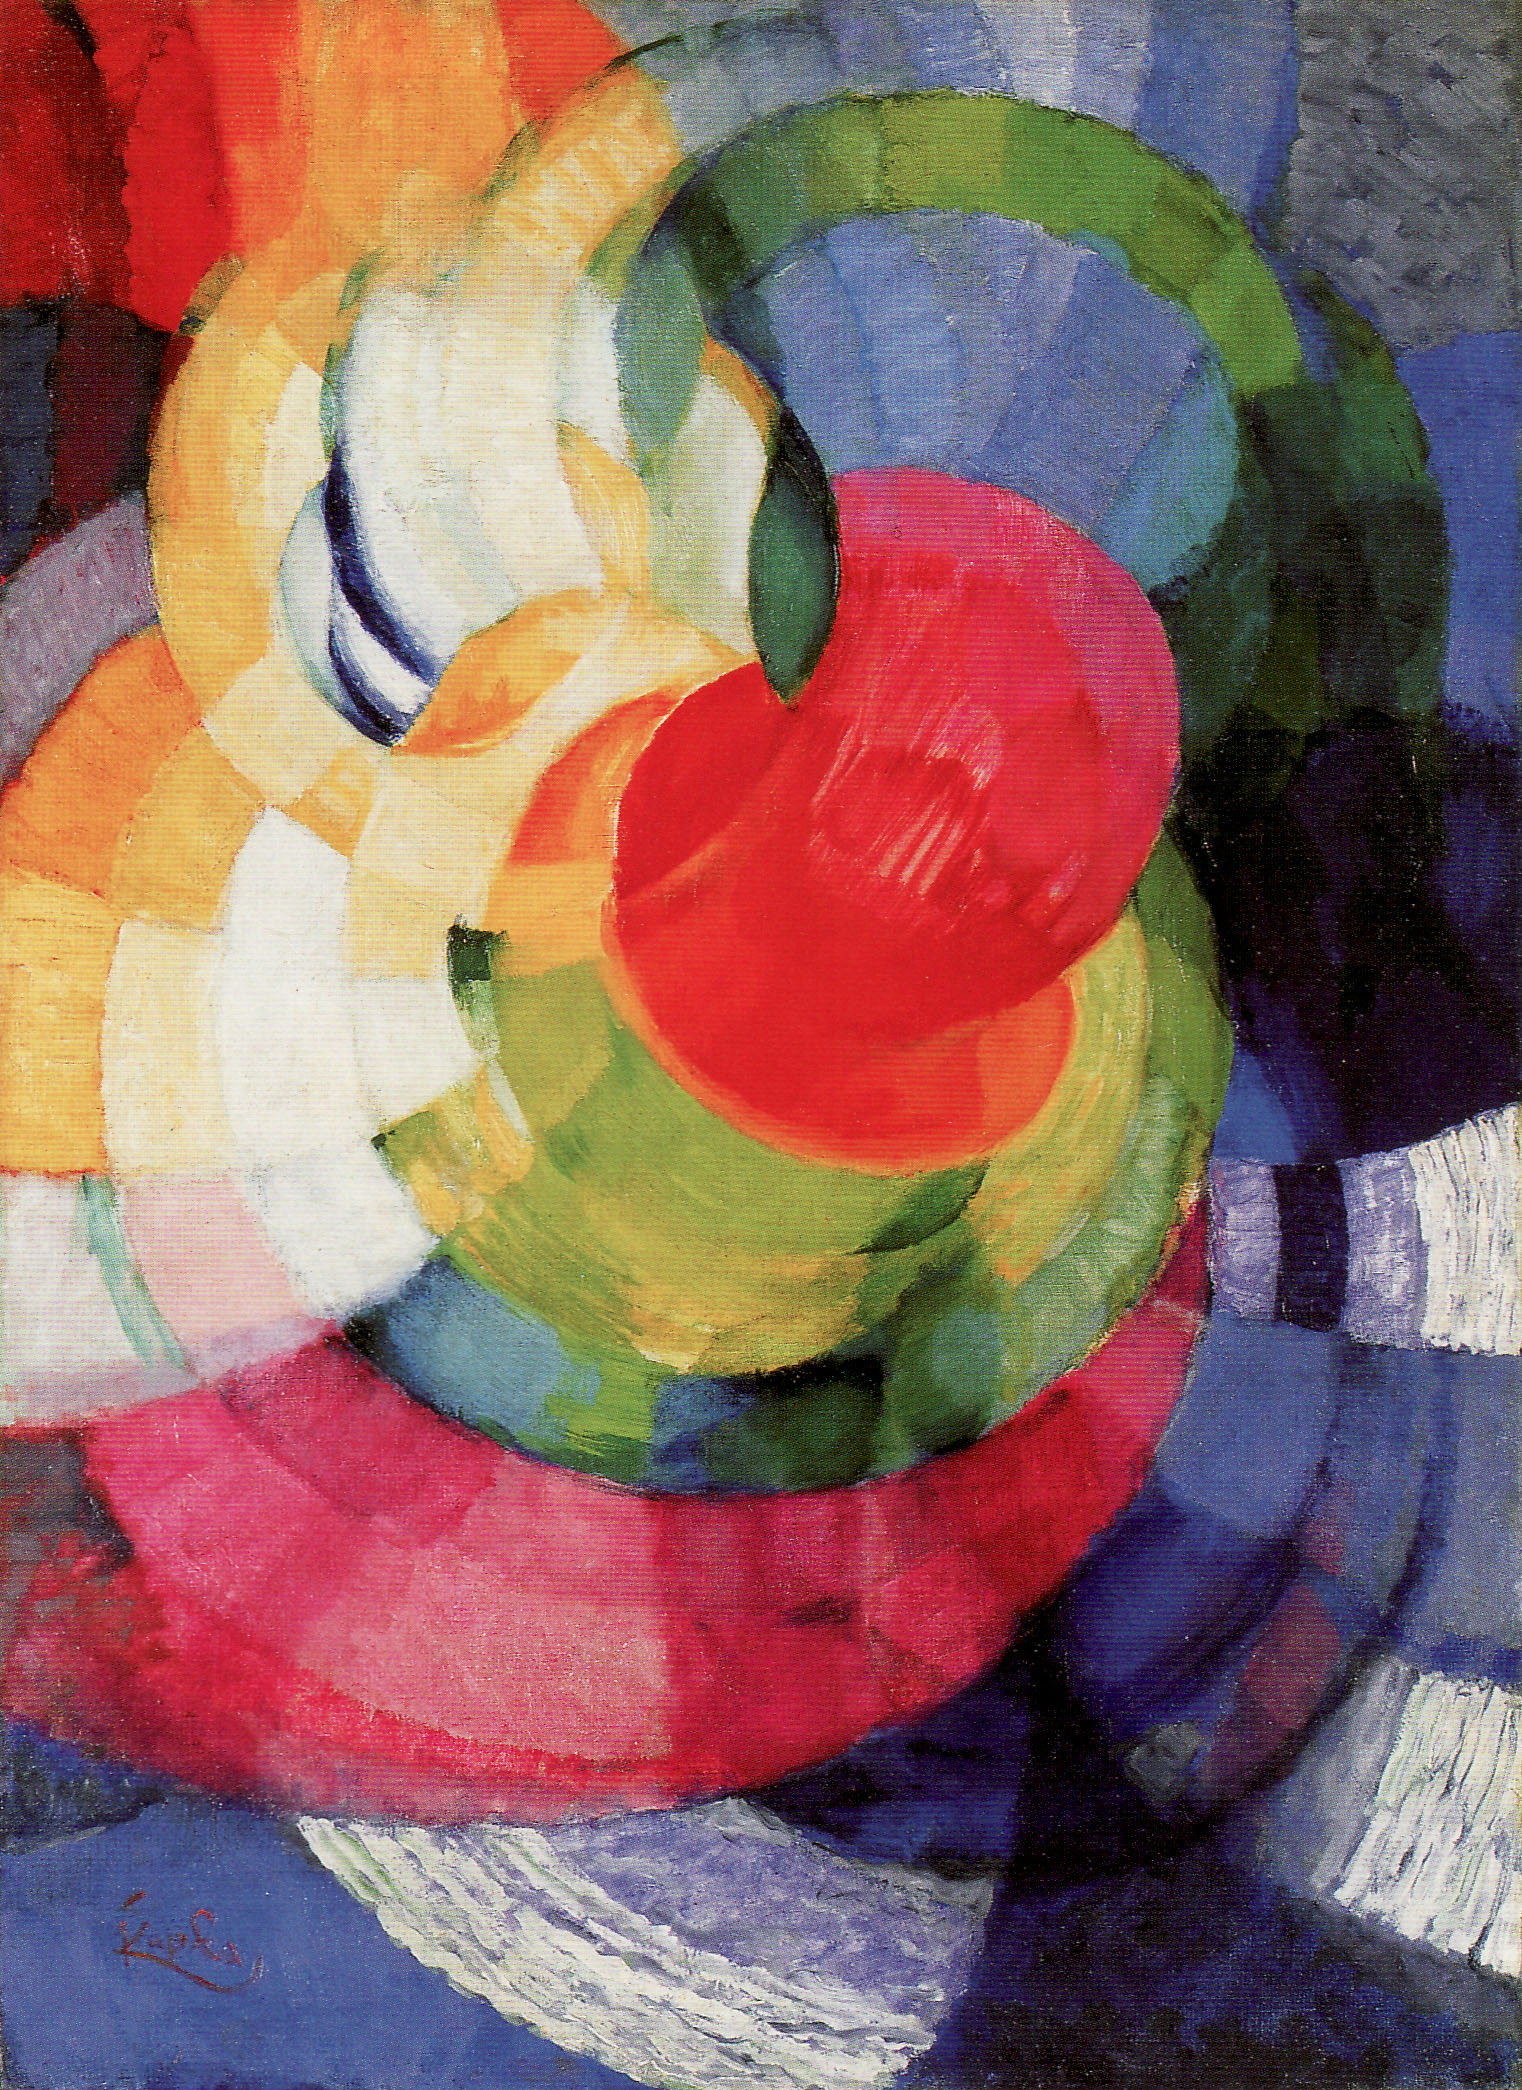 František Kupka - Page 3 Disks-of-newton-study-for-fugue-in-two-colors